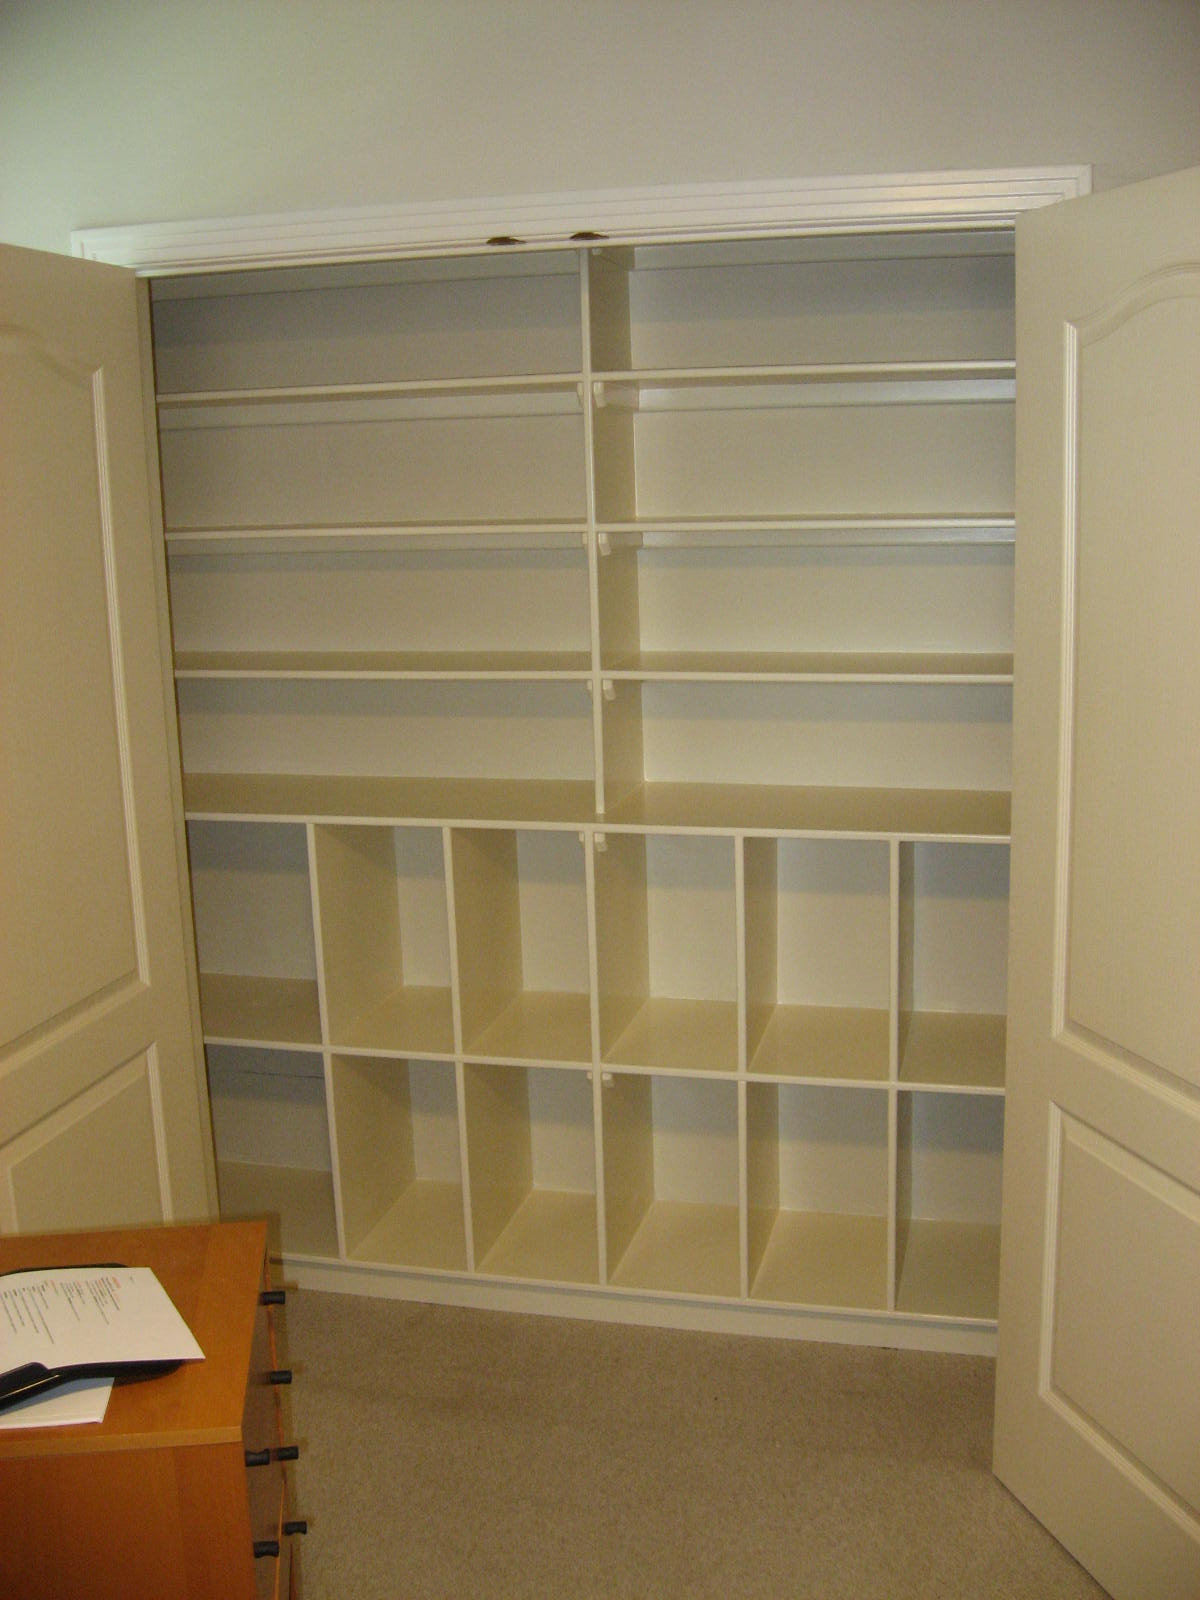 office closet shelving. Our Client Started A Business And Wanted To Use Her Office Closet Store  Display Wares. But There Was Only Couple Of Flimsy Shelves, Shelving S